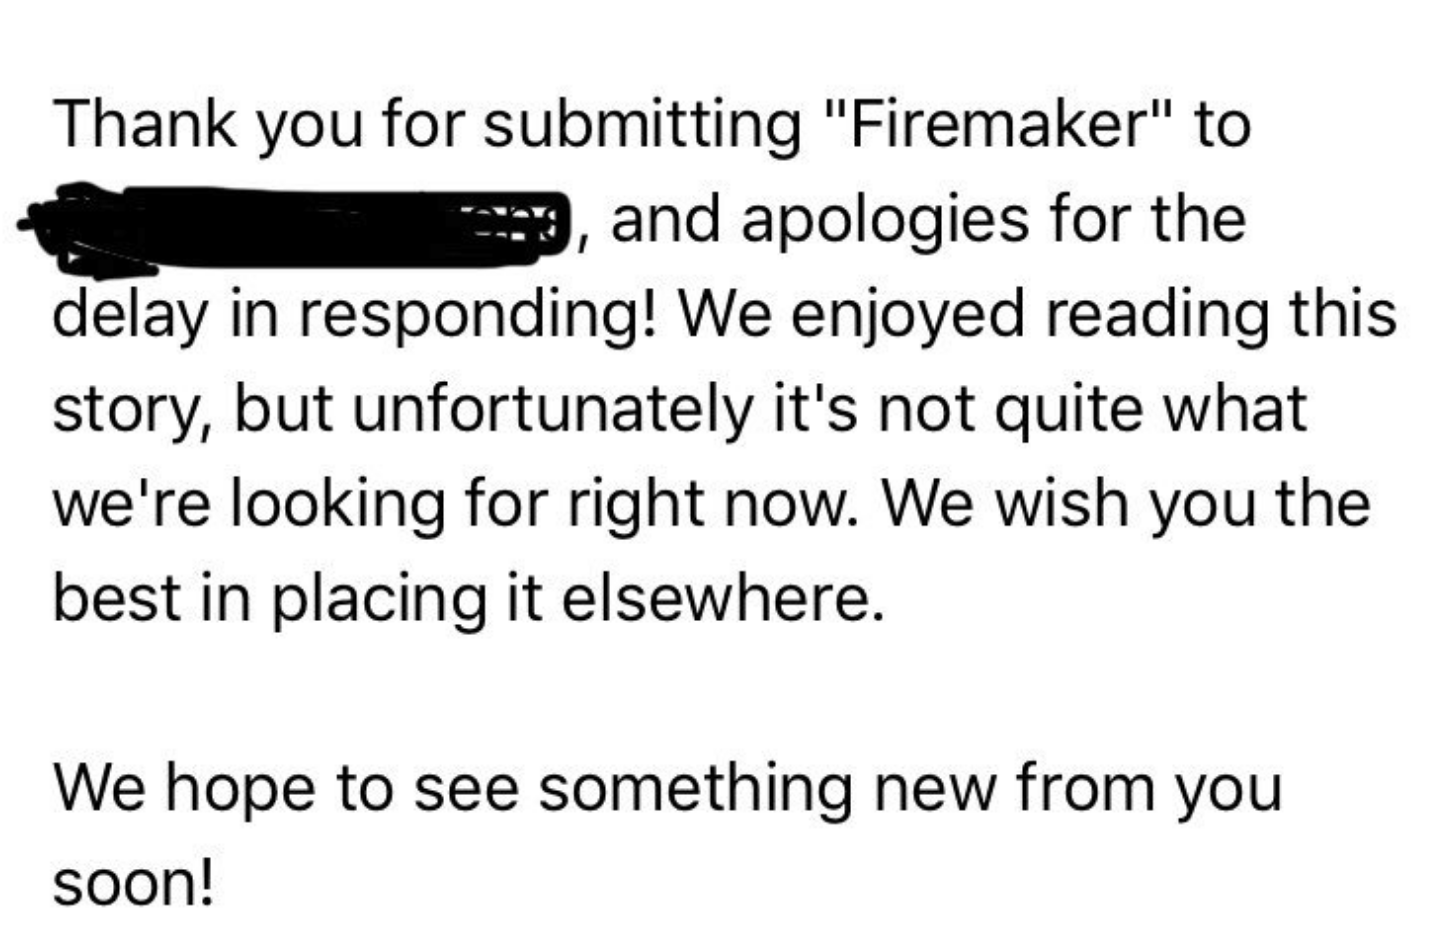 firemaker-rejection-11_2019